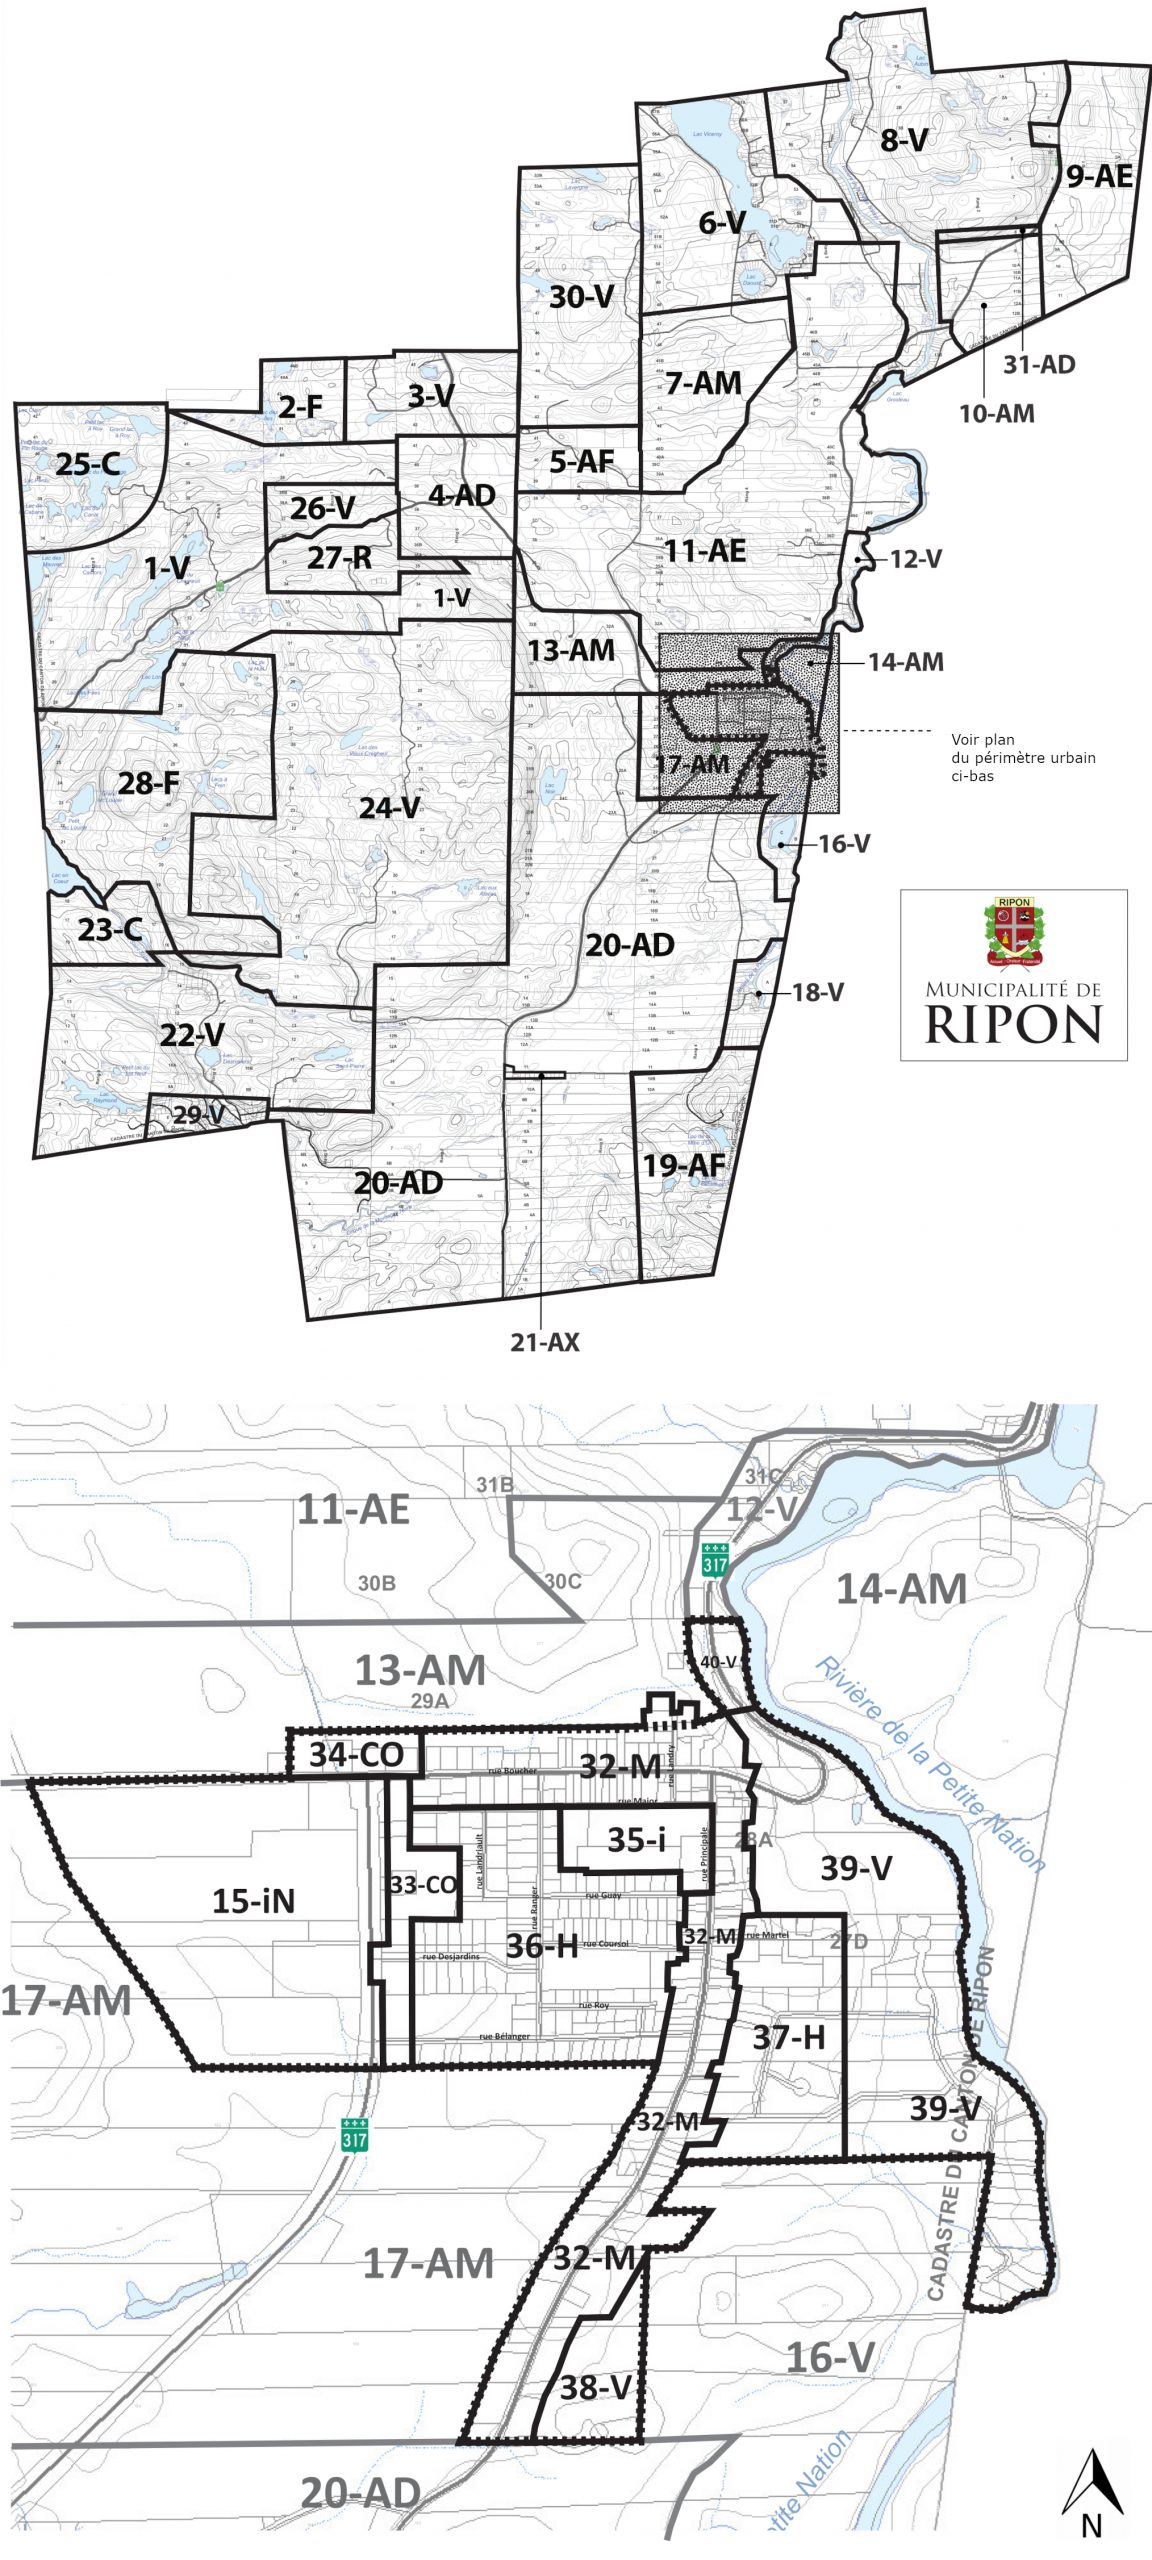 Municipalité de Ripon – Plan de zonage